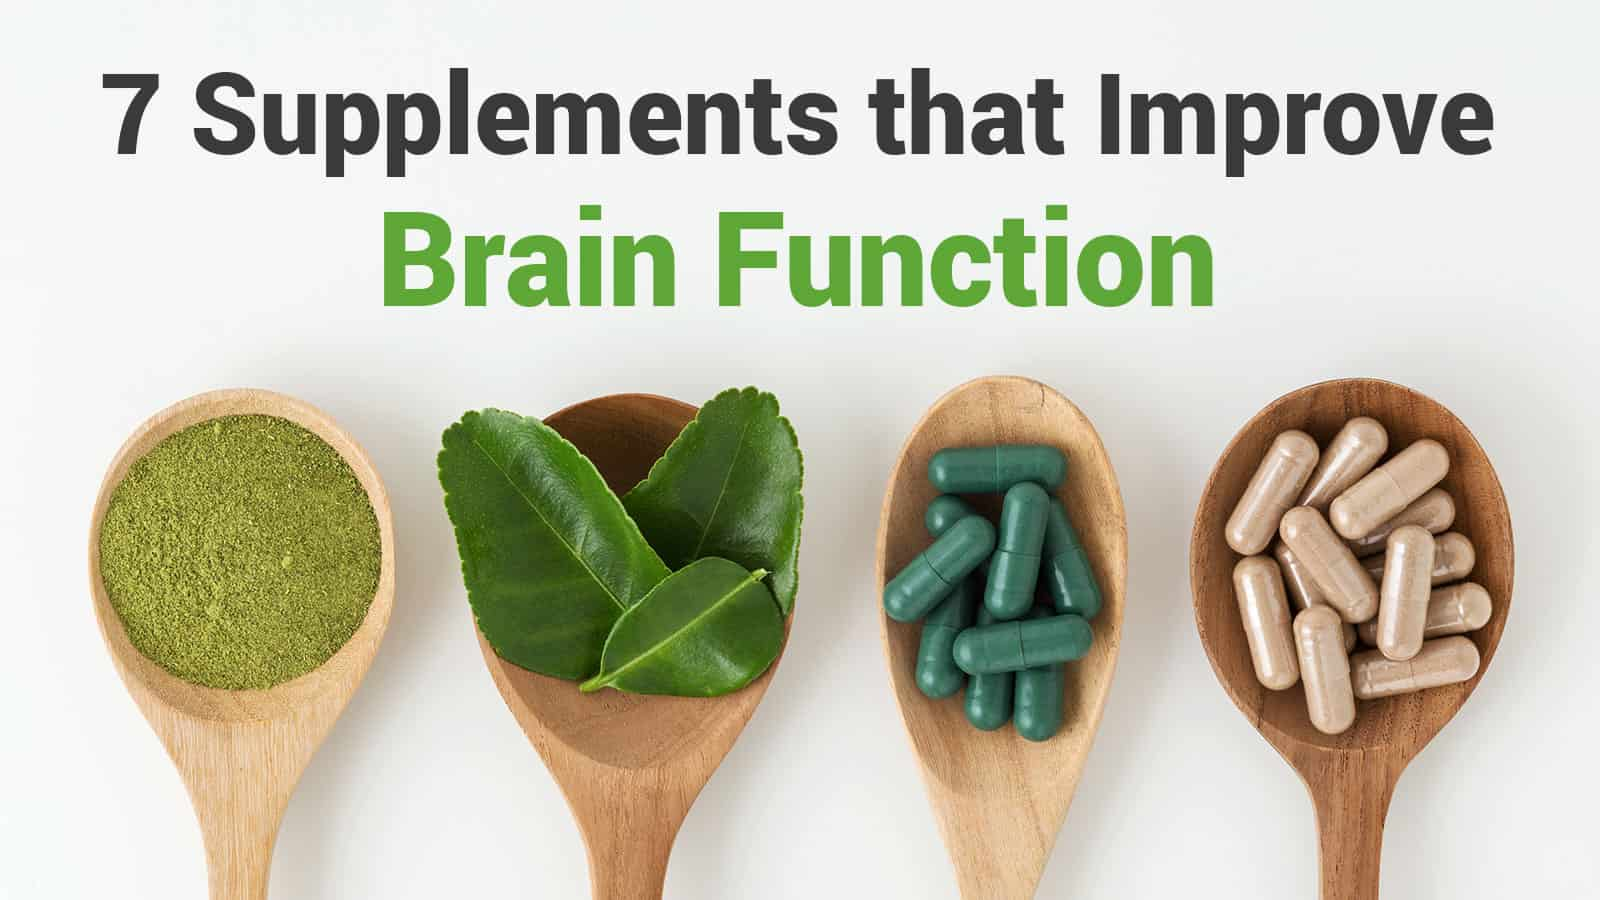 7 Supplements that Improve Brain Function